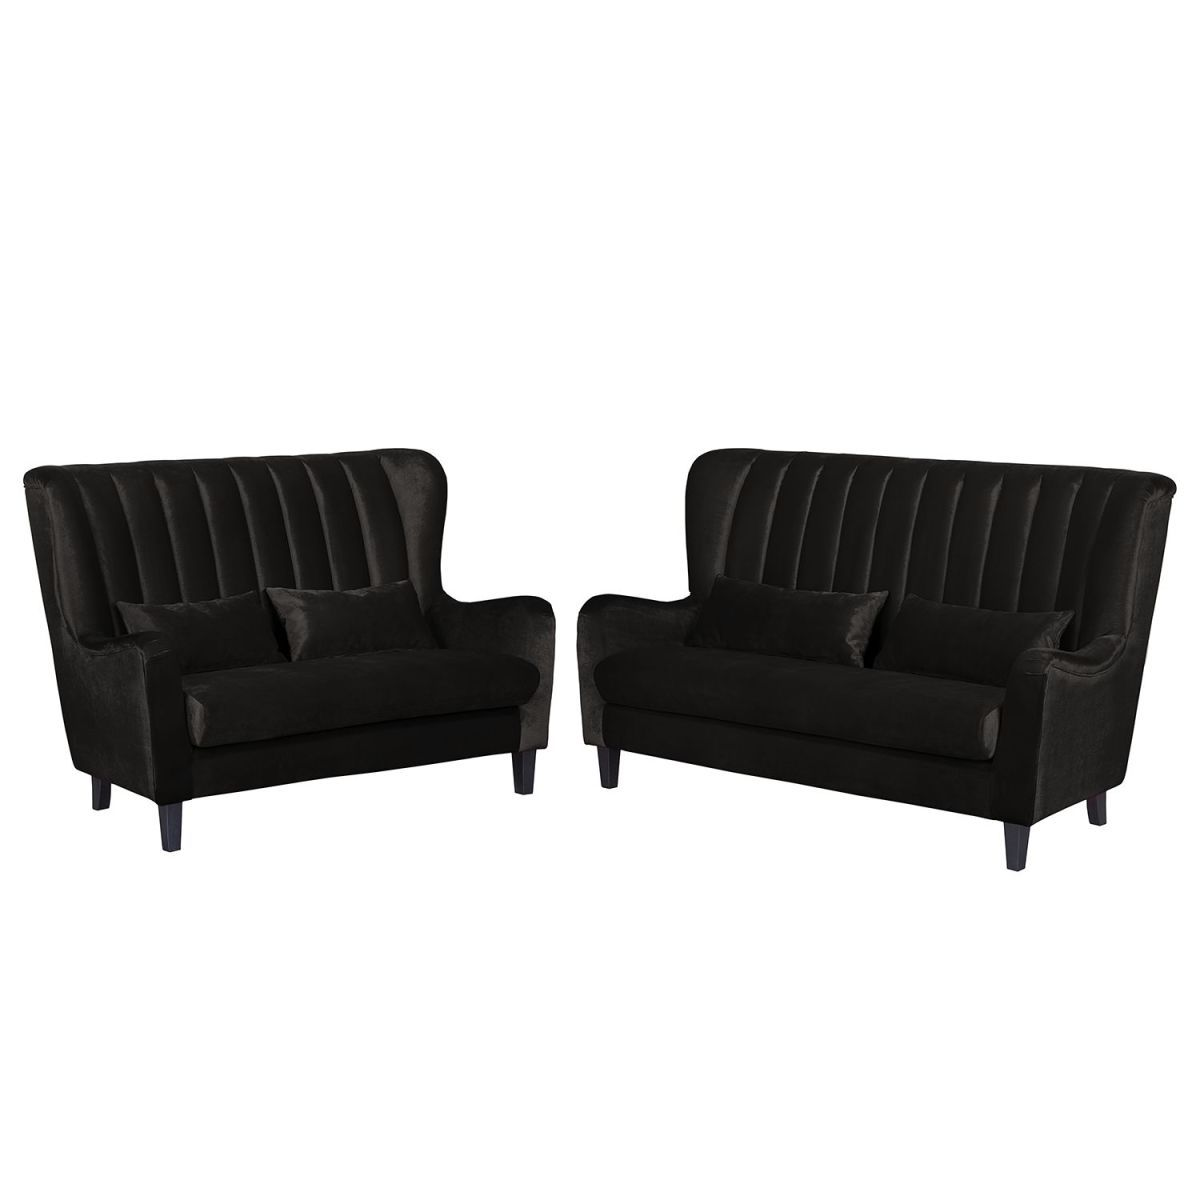 Pin By Ladendirekt On Sofas Couches Sofa Furniture Home Decor